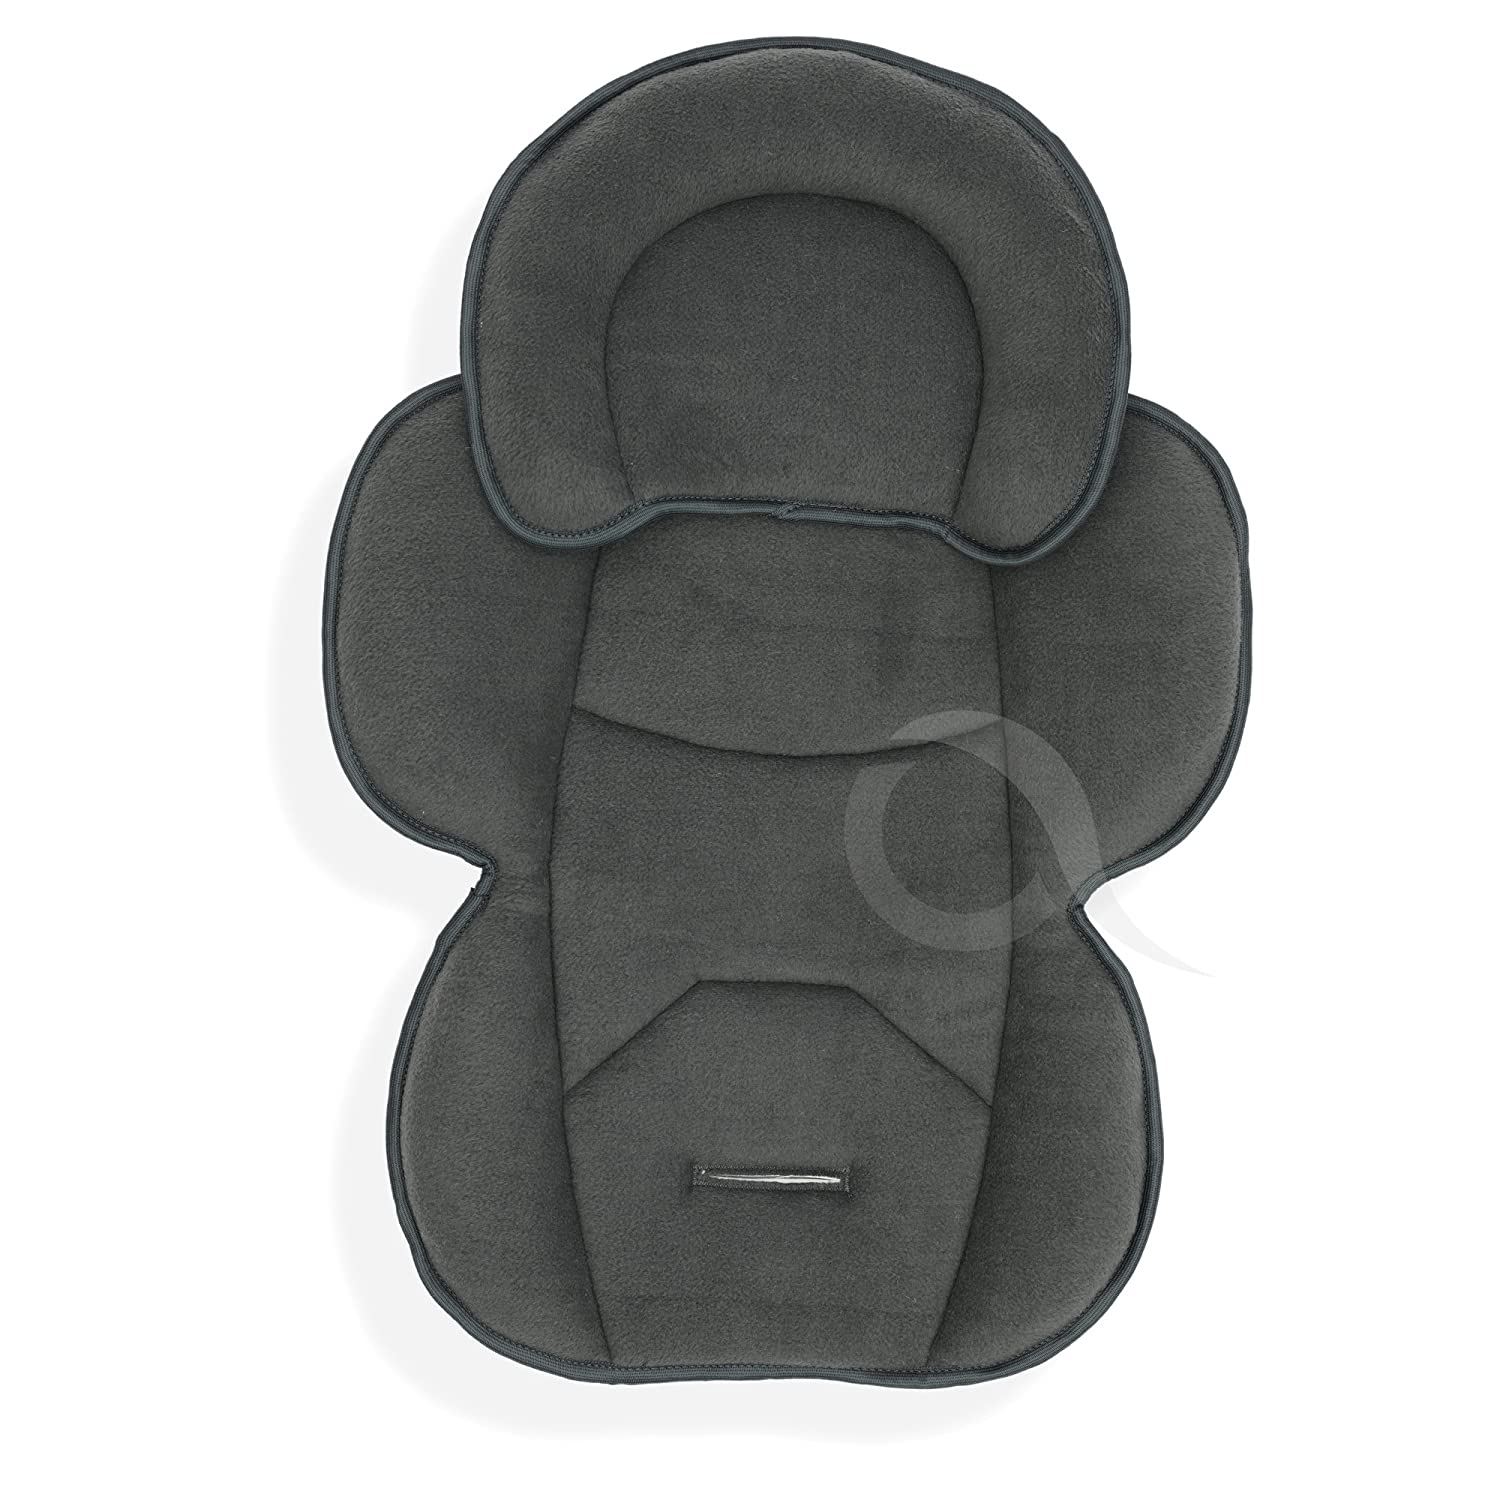 OLO BABY Infant Snuzzler Head Hugger /& Full Body Support Liner for Car Seat Buggy Pushchair charcoal